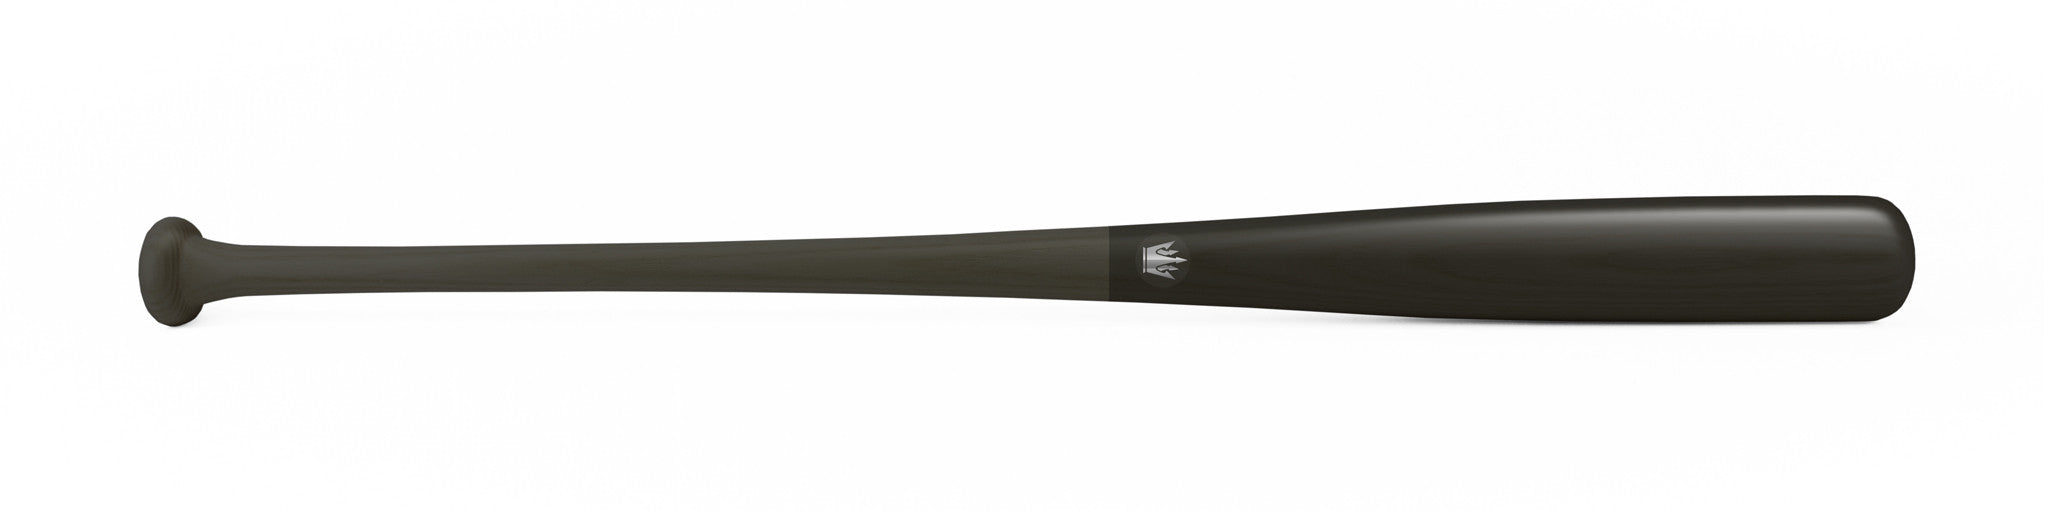 Wood bat - Ash model 421 Black Knight - 30